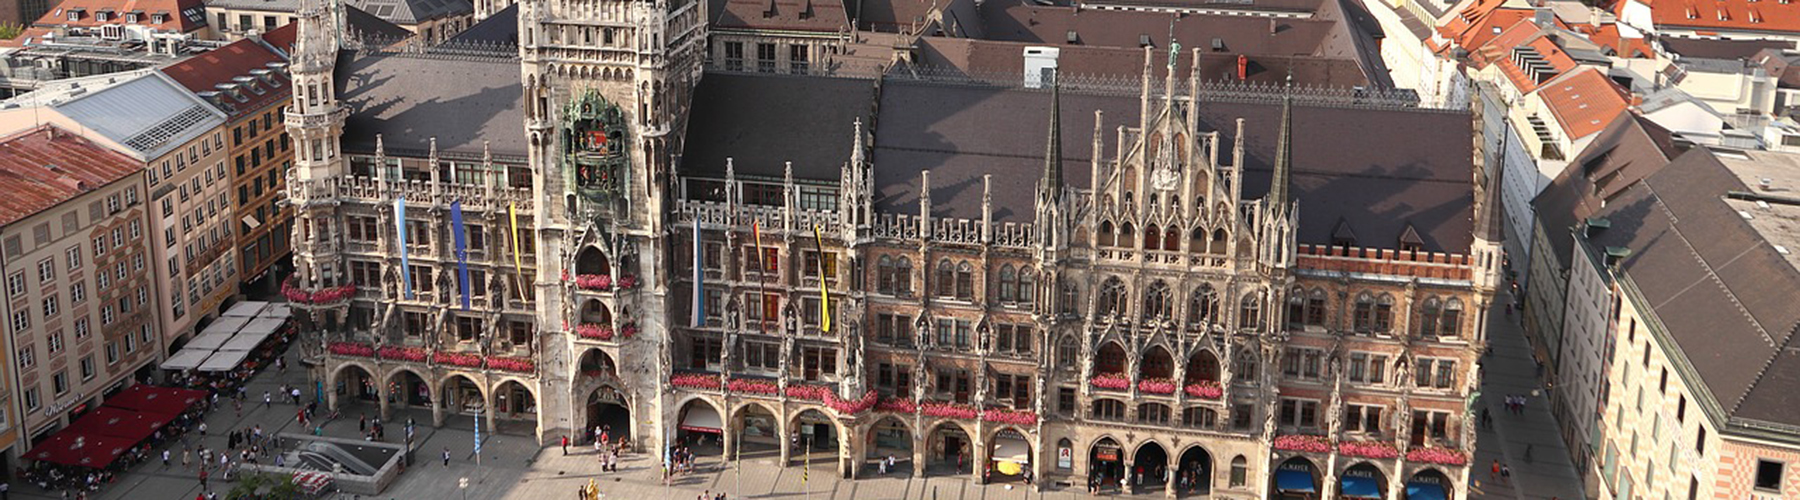 Munich – Hostels close to Marienplatz with Mariensäule. Maps for Munich, Photos and Reviews for each hostel in Munich.